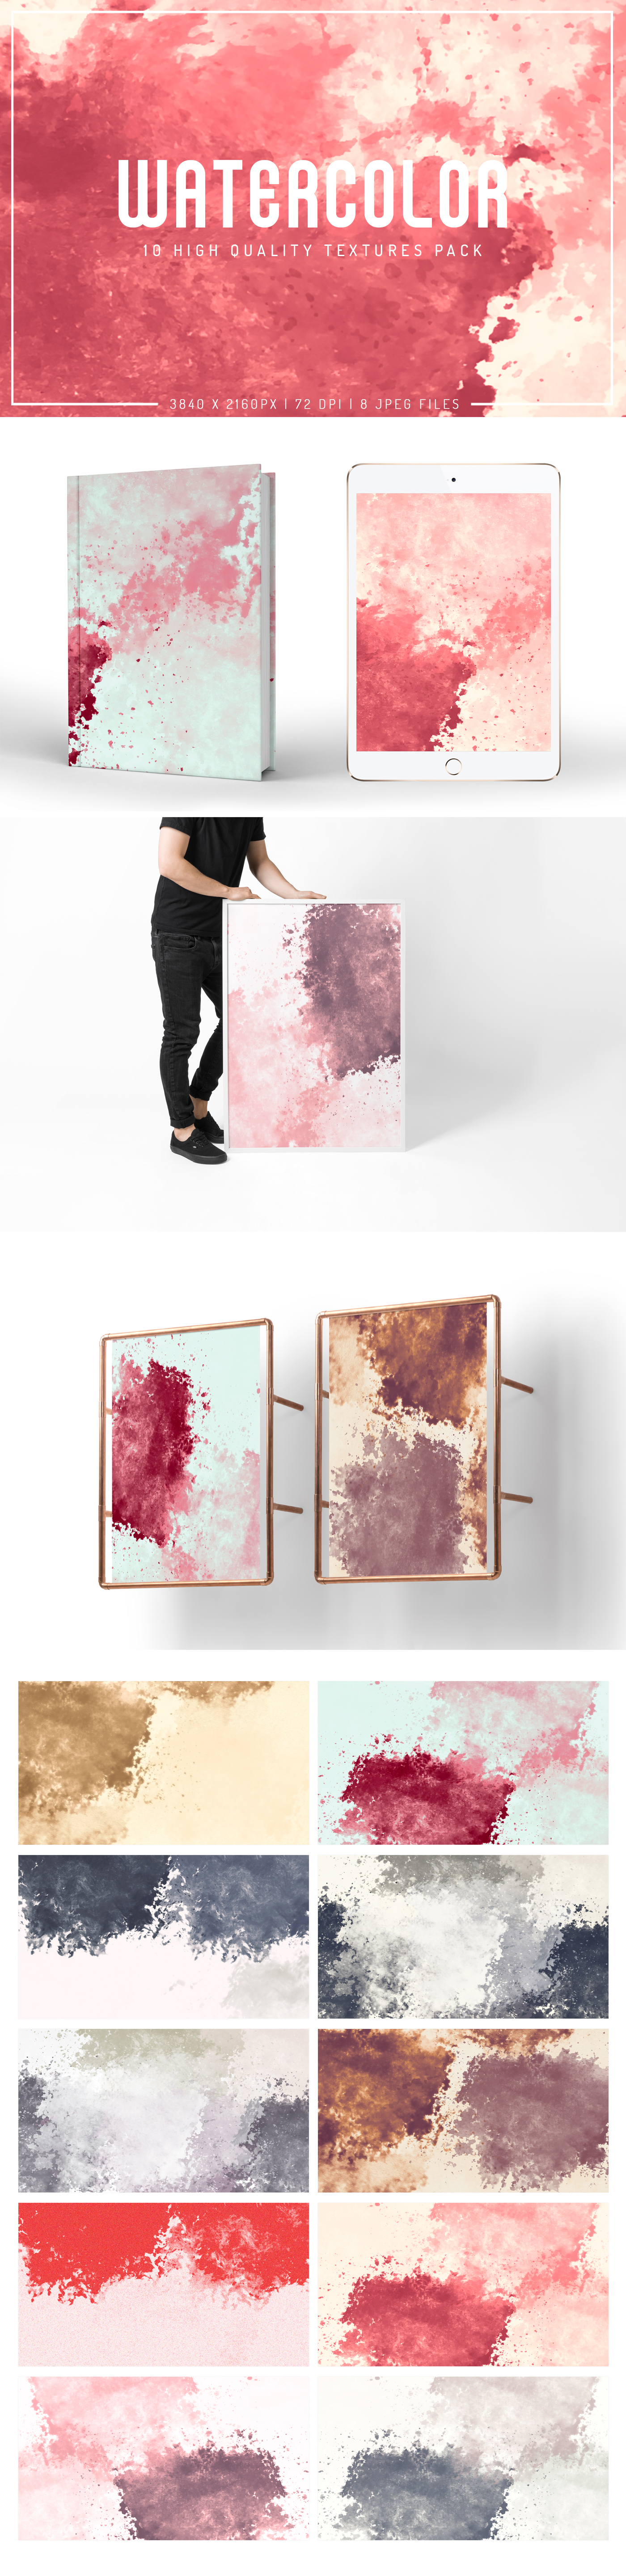 #Watercolor Free #Textures #Pack is a beautiful pack of watercolor texture for trendy and elegant design lovers! It is available in JPG file format in 3840x2160px resolution.